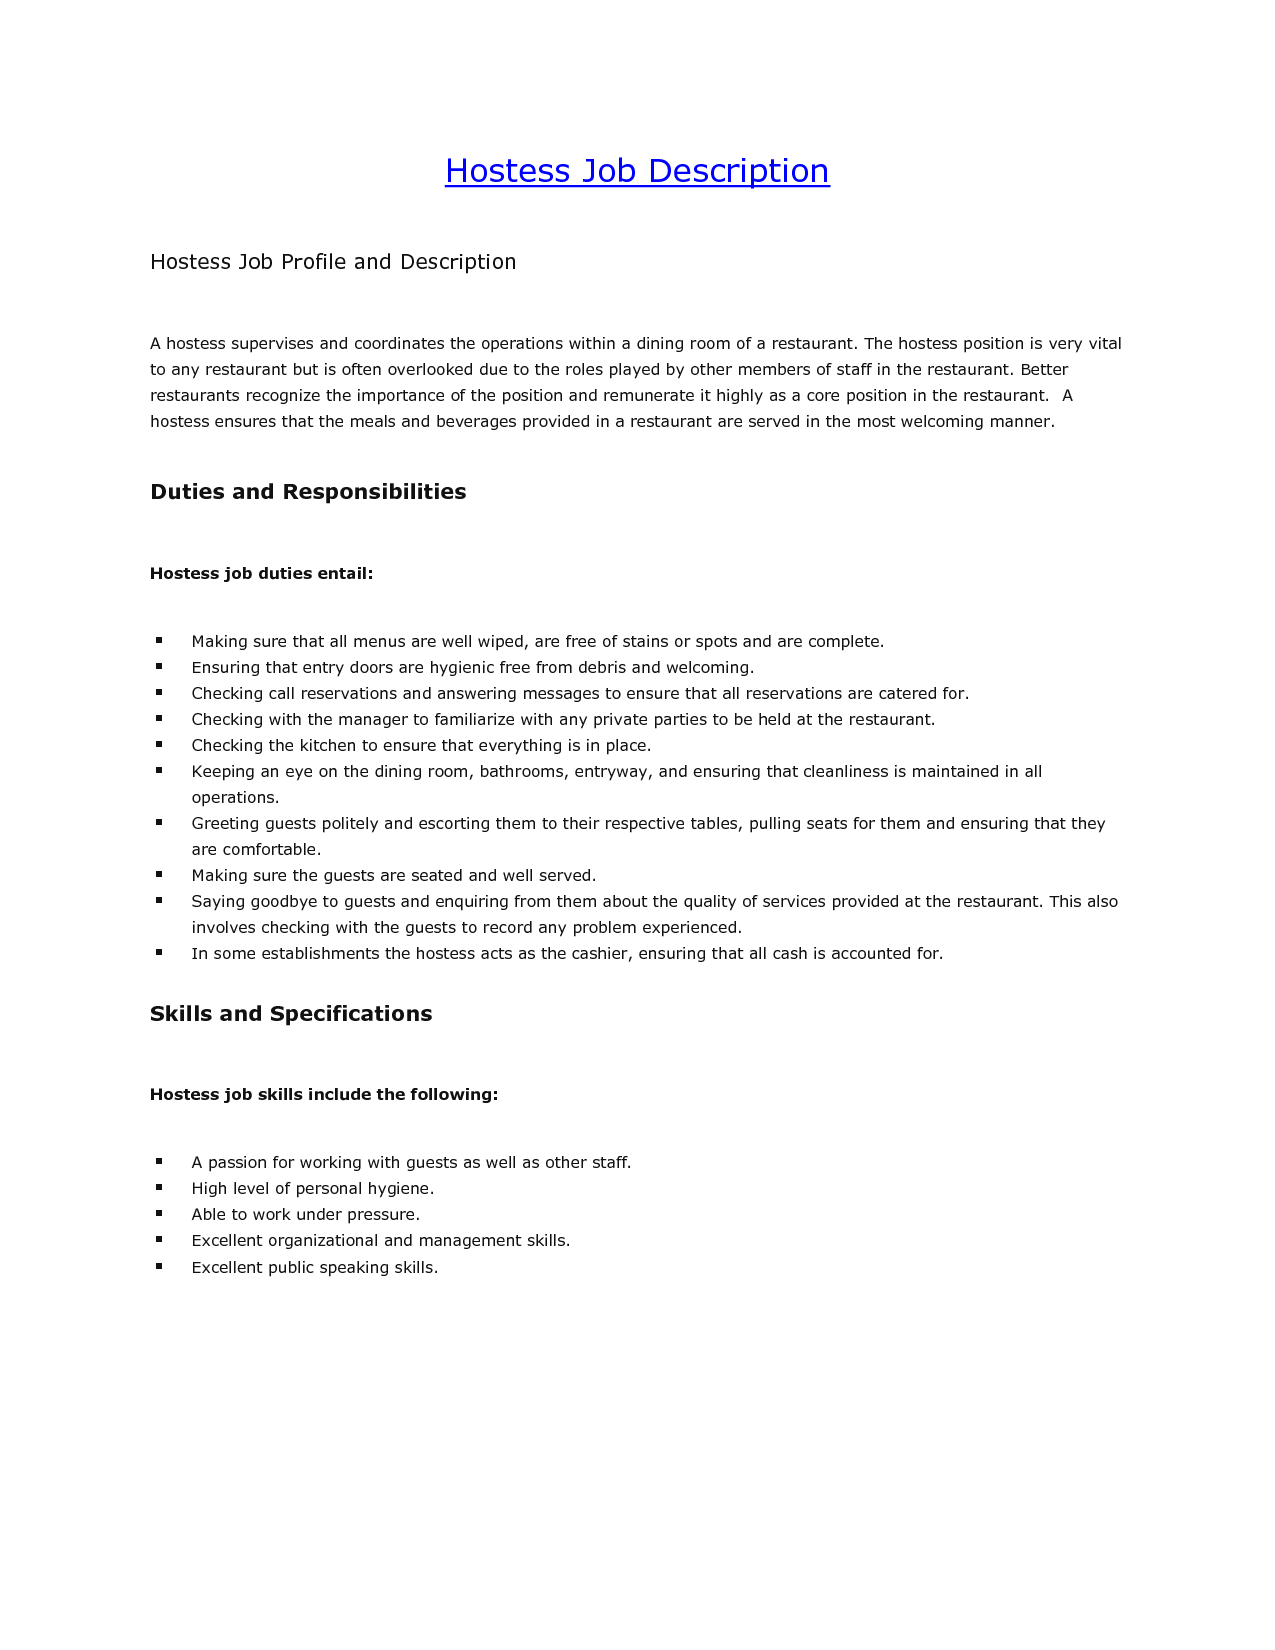 9 Hostess Job Description For Resume SampleBusinessResume – Hostess Job Description